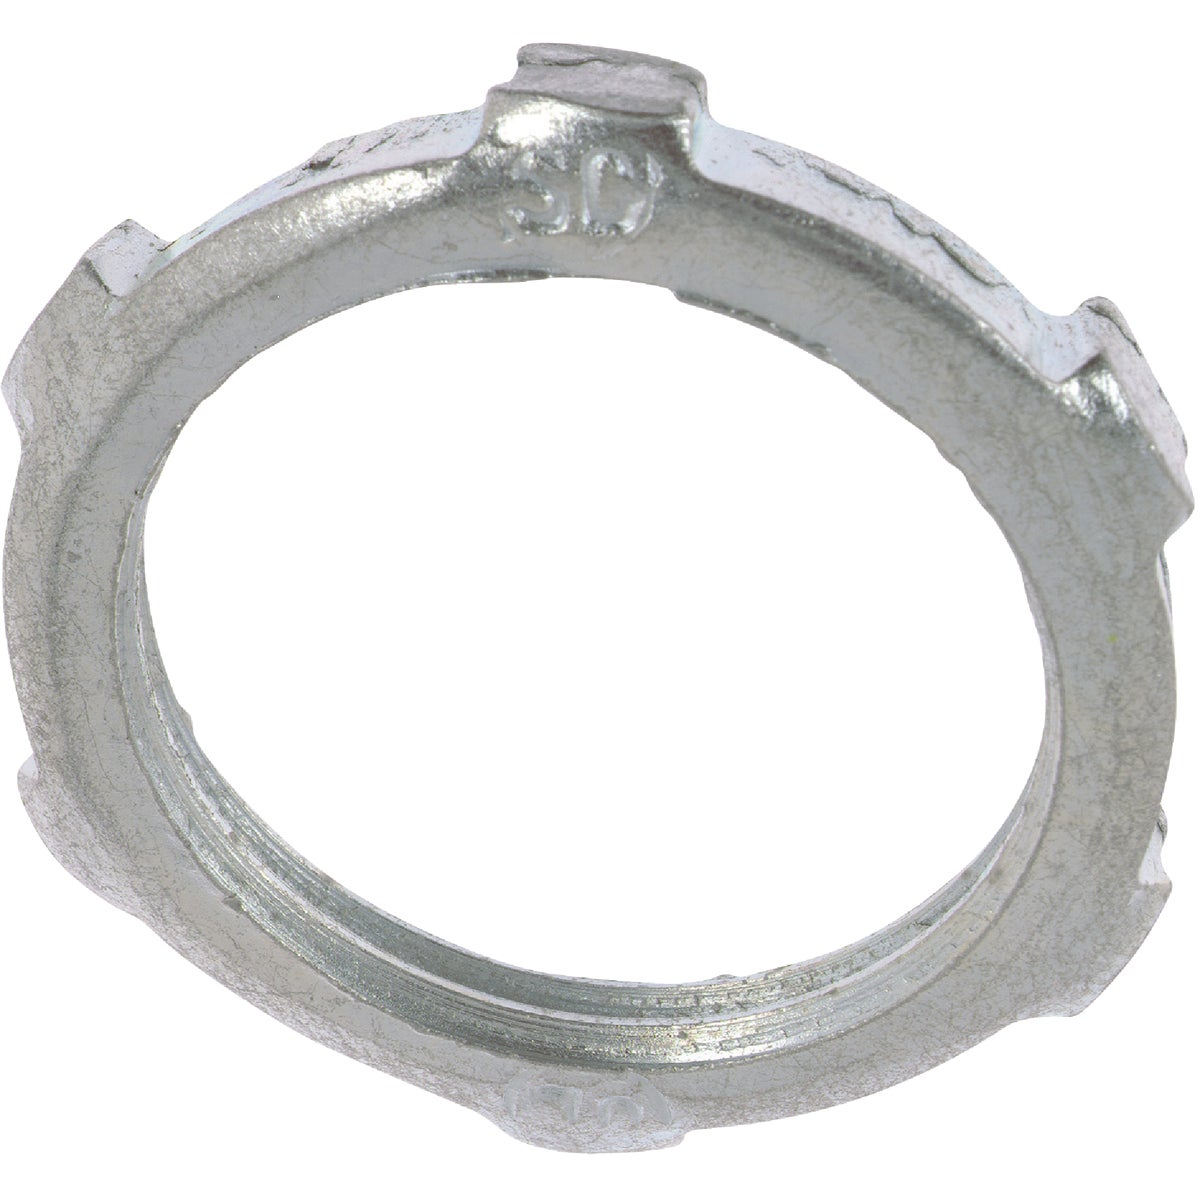 "5PK 1-1/4"" LOCKNUT - LN1045 by Thomas & Betts"